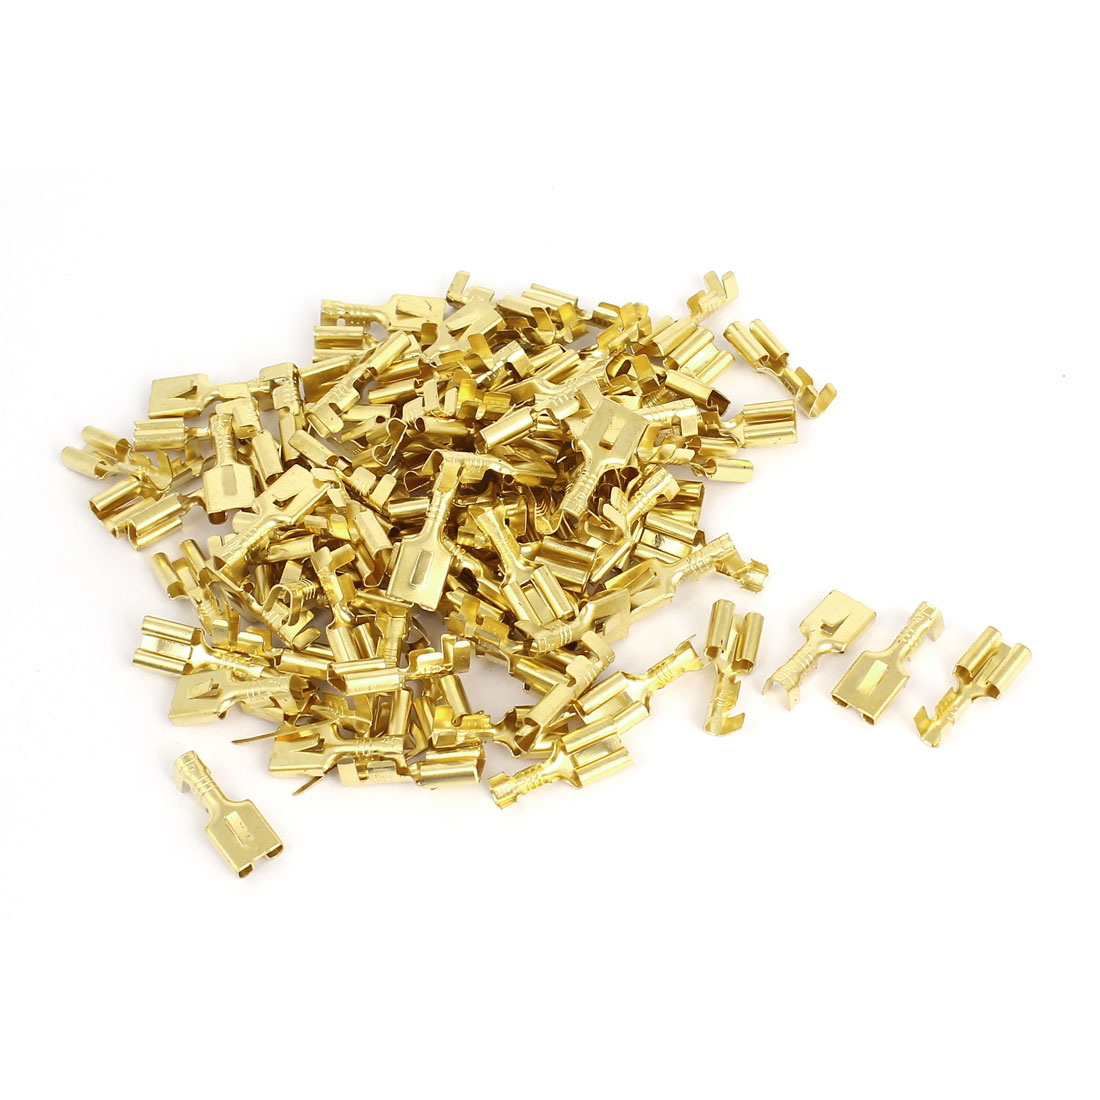 100 Pcs 7mm Crimp Cable Terminal Female Spade Connectors Gold Tone